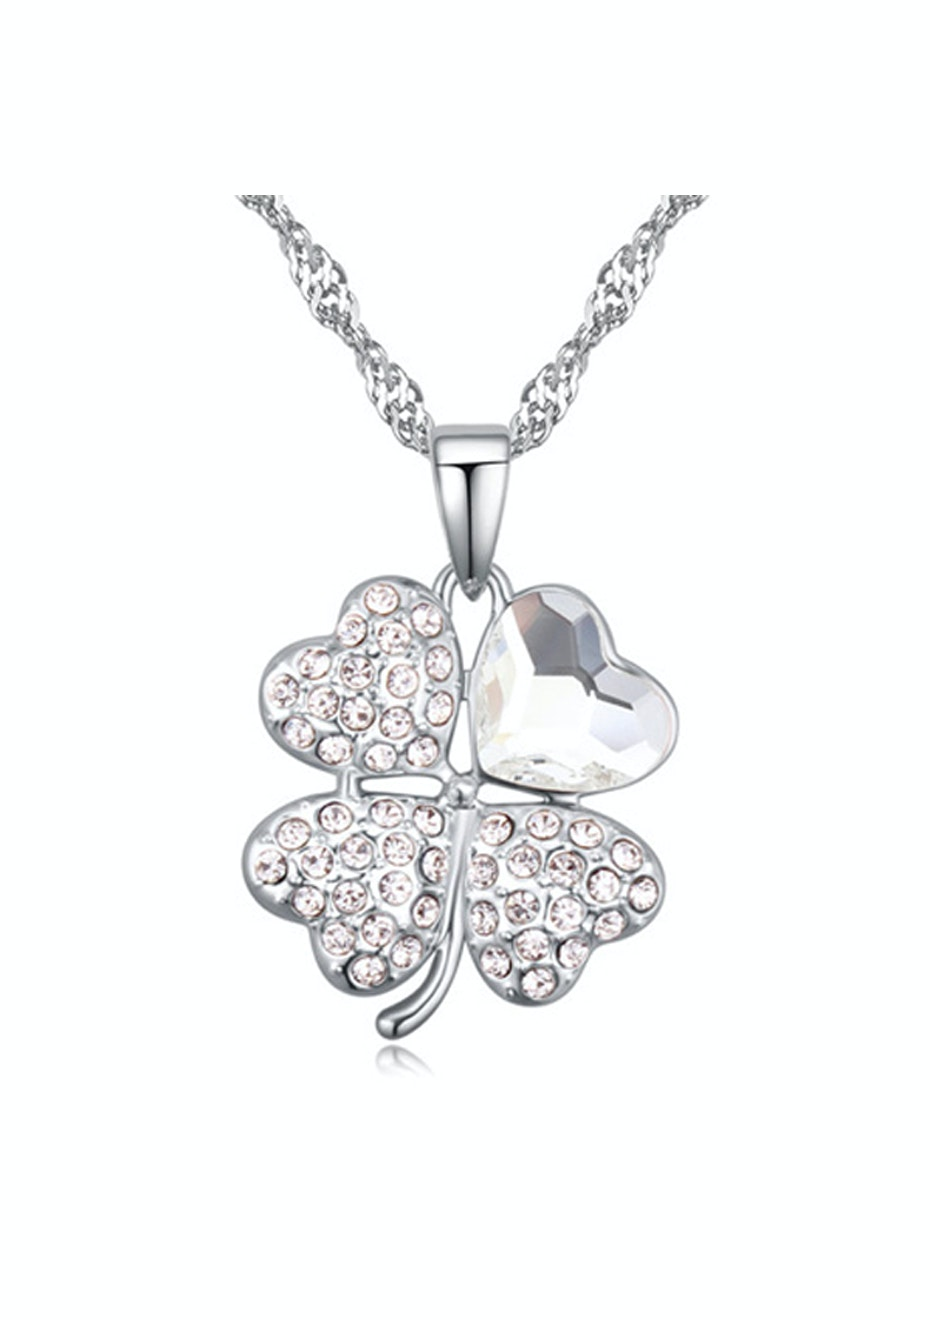 Clover Pendant Necklace Embellished with Crystals from Swarovski -CLR